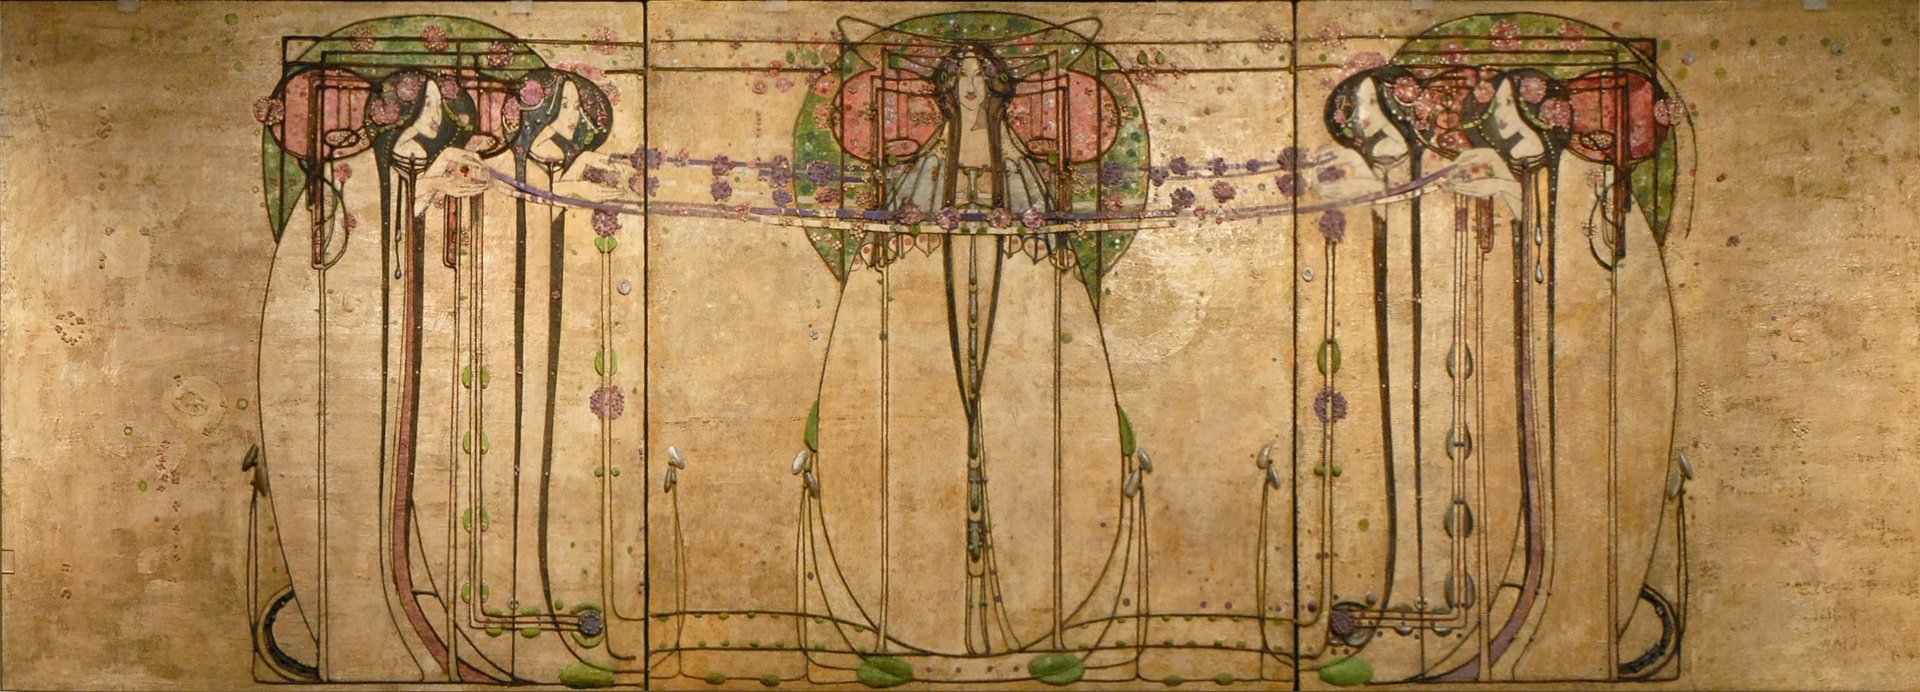 file the may queen de margaret macdonald glasgow 3803689322 jpg wikimedia commons. Black Bedroom Furniture Sets. Home Design Ideas